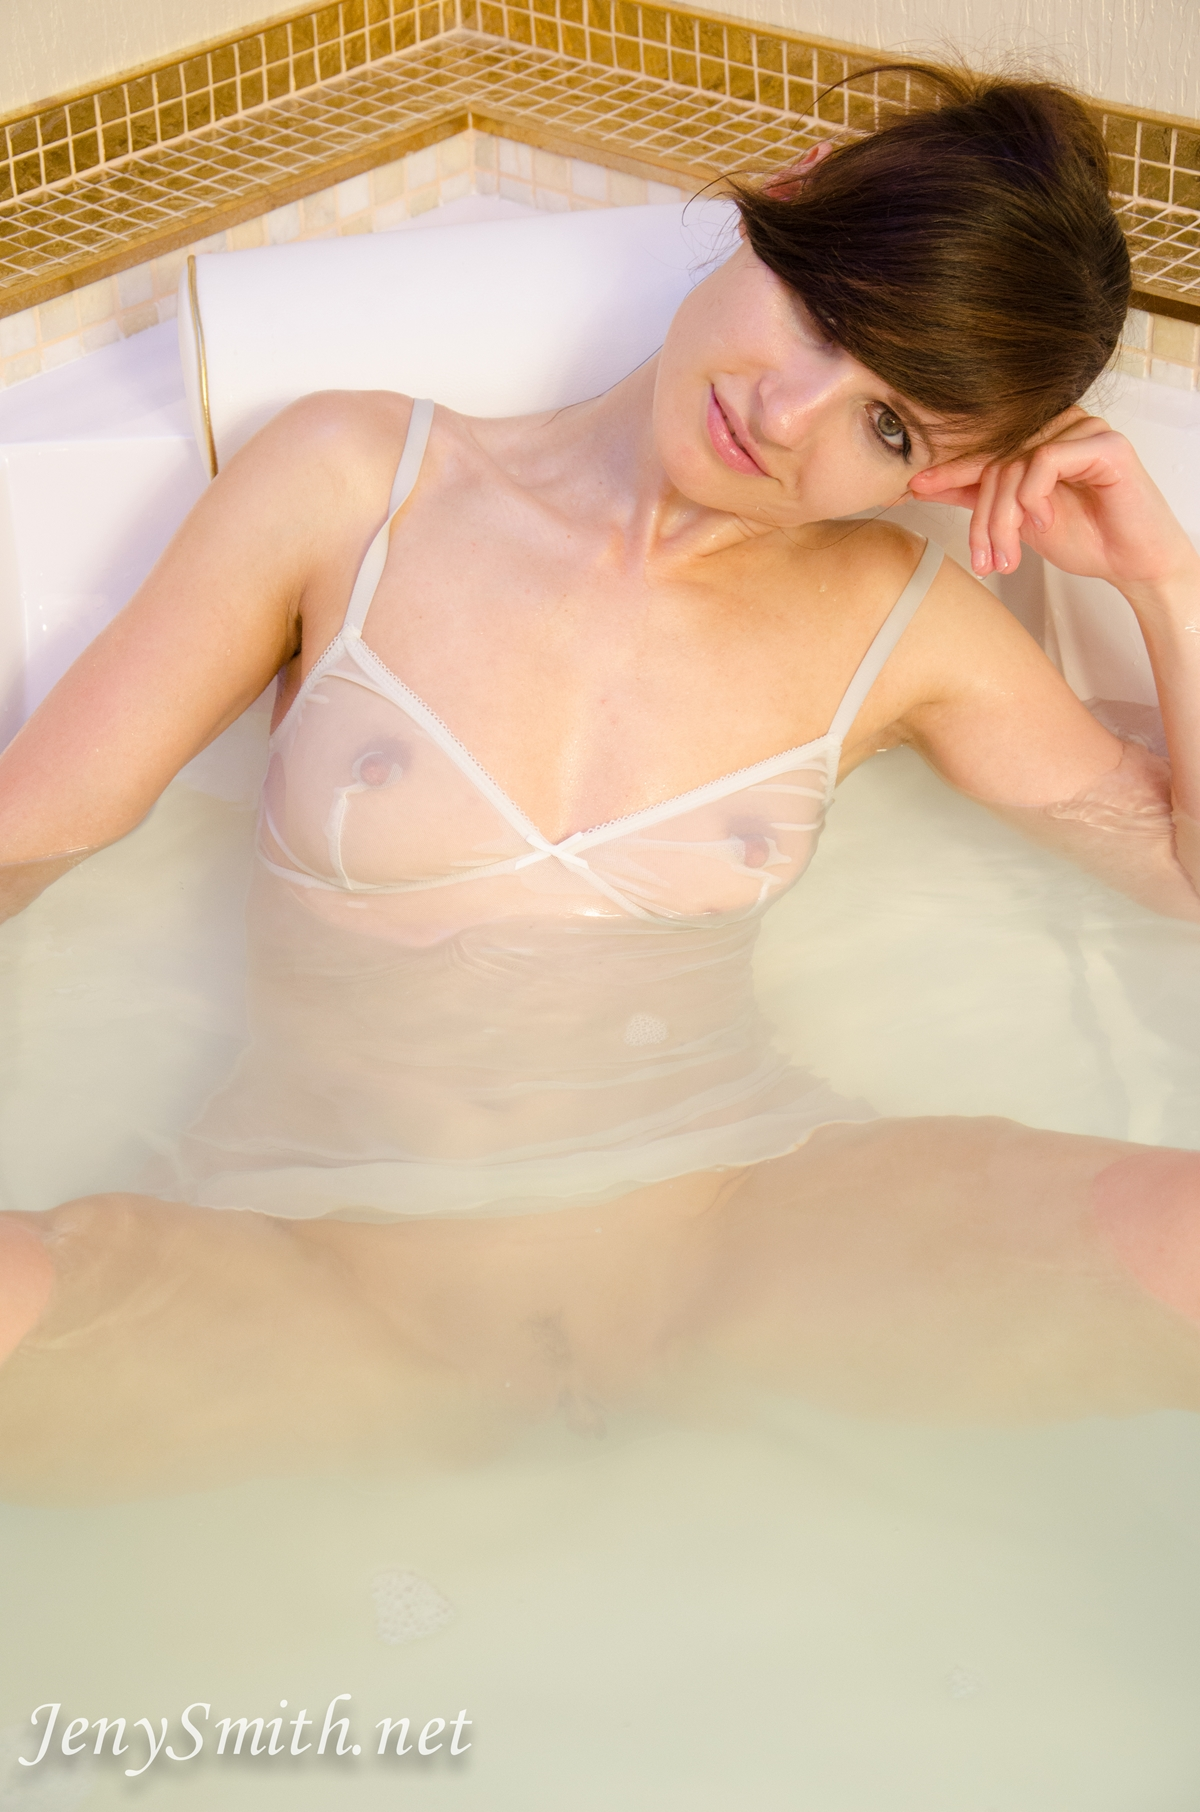 jeny-smith-hot-tub_08